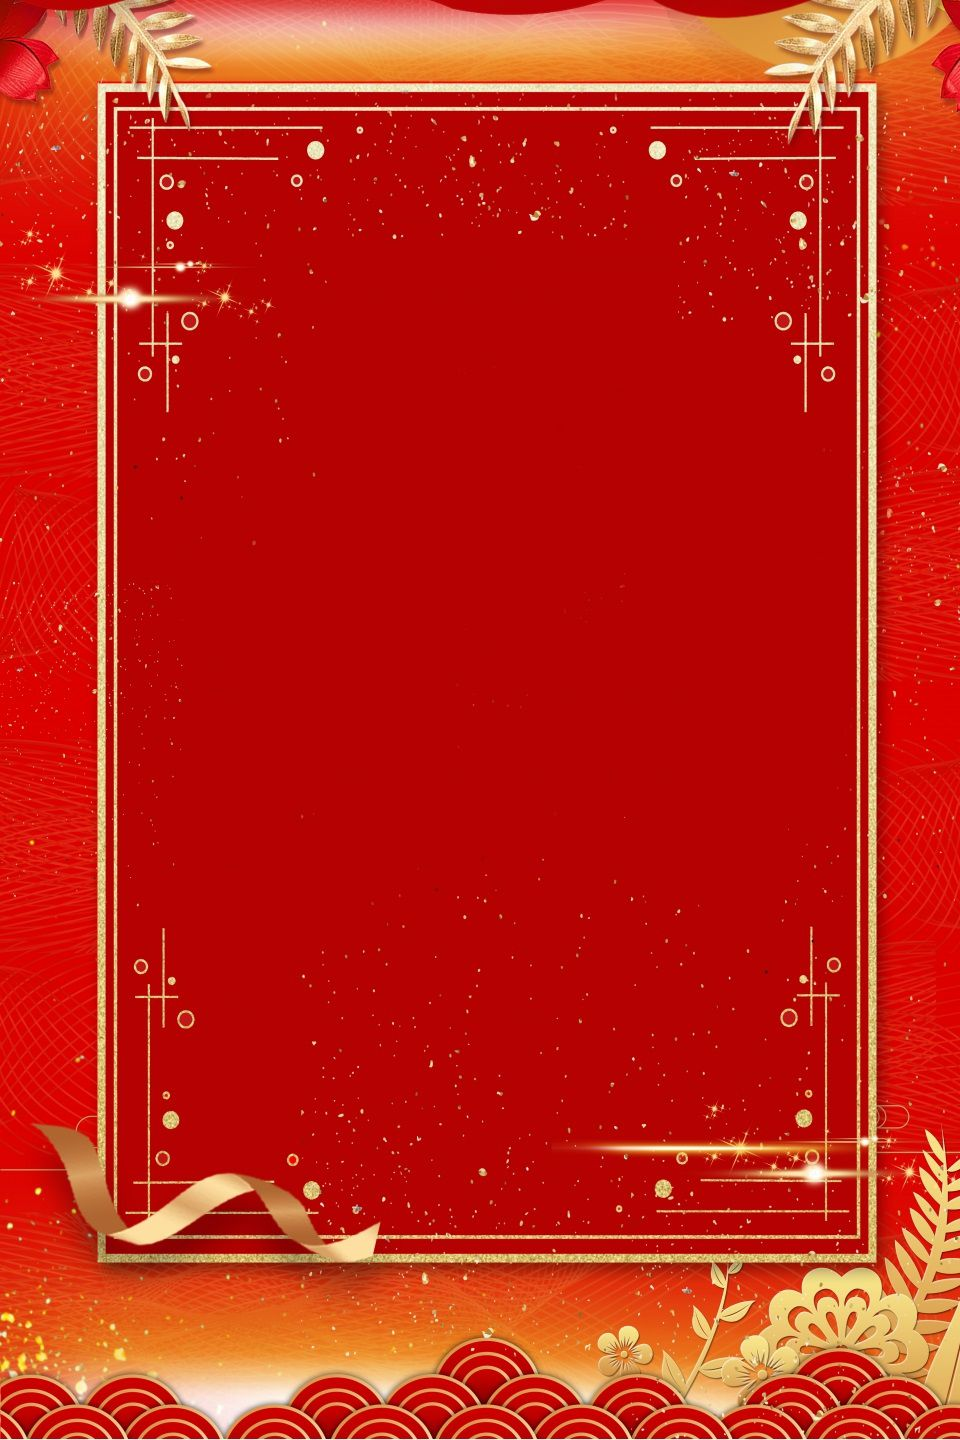 008 Awful Red Carpet Invitation Template Free Highest Quality  DownloadFull